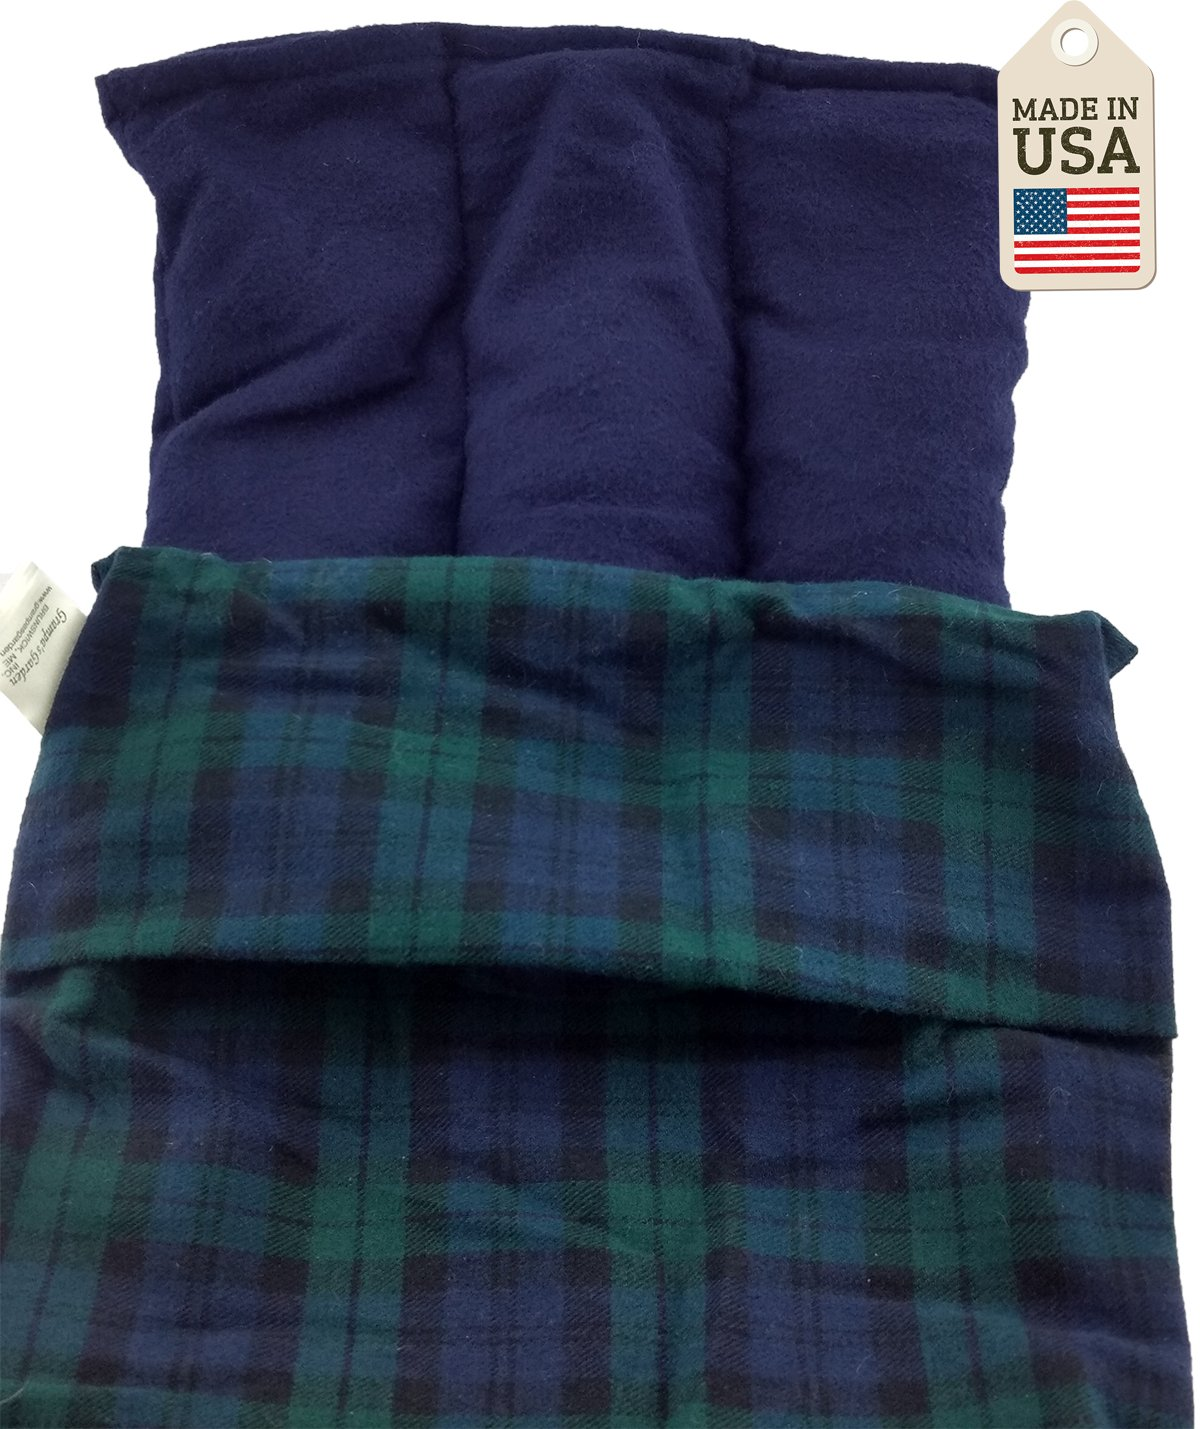 Lumbar Pac - The Lower Back Hot or Cold Pack - Black Watch Plaid by Grampa's Garden